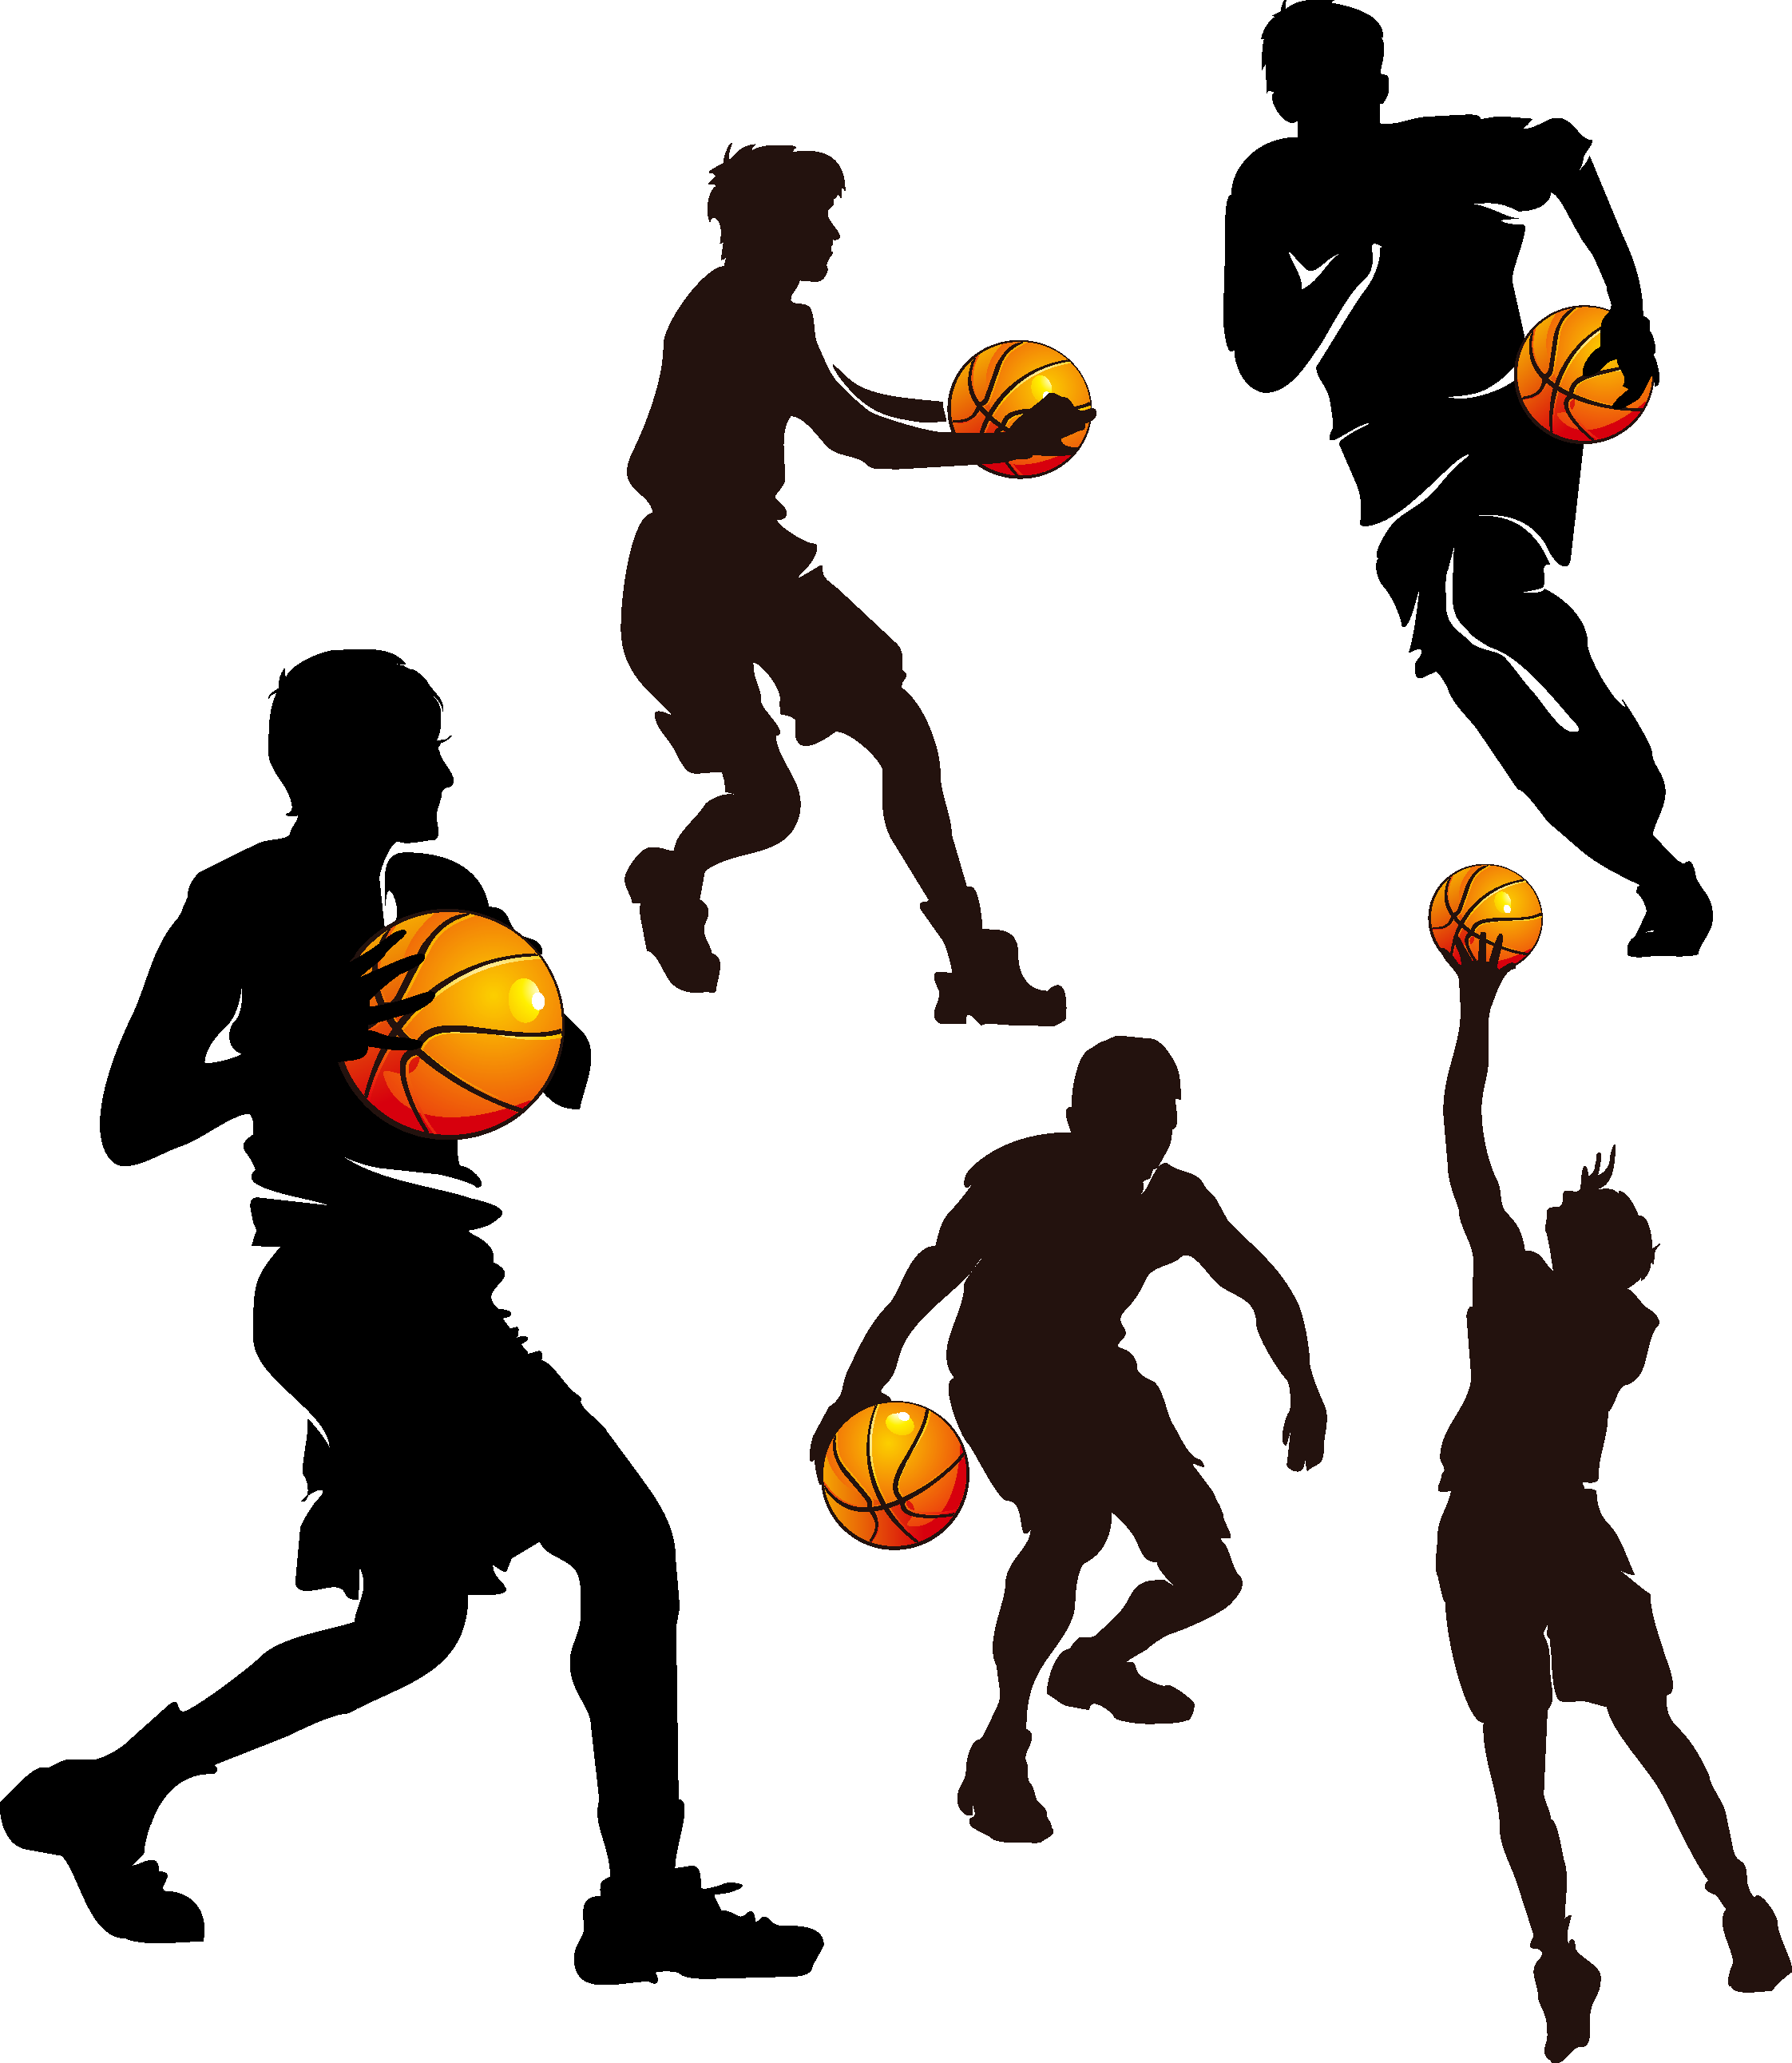 Silhouette team at getdrawings. Teamwork clipart basketball